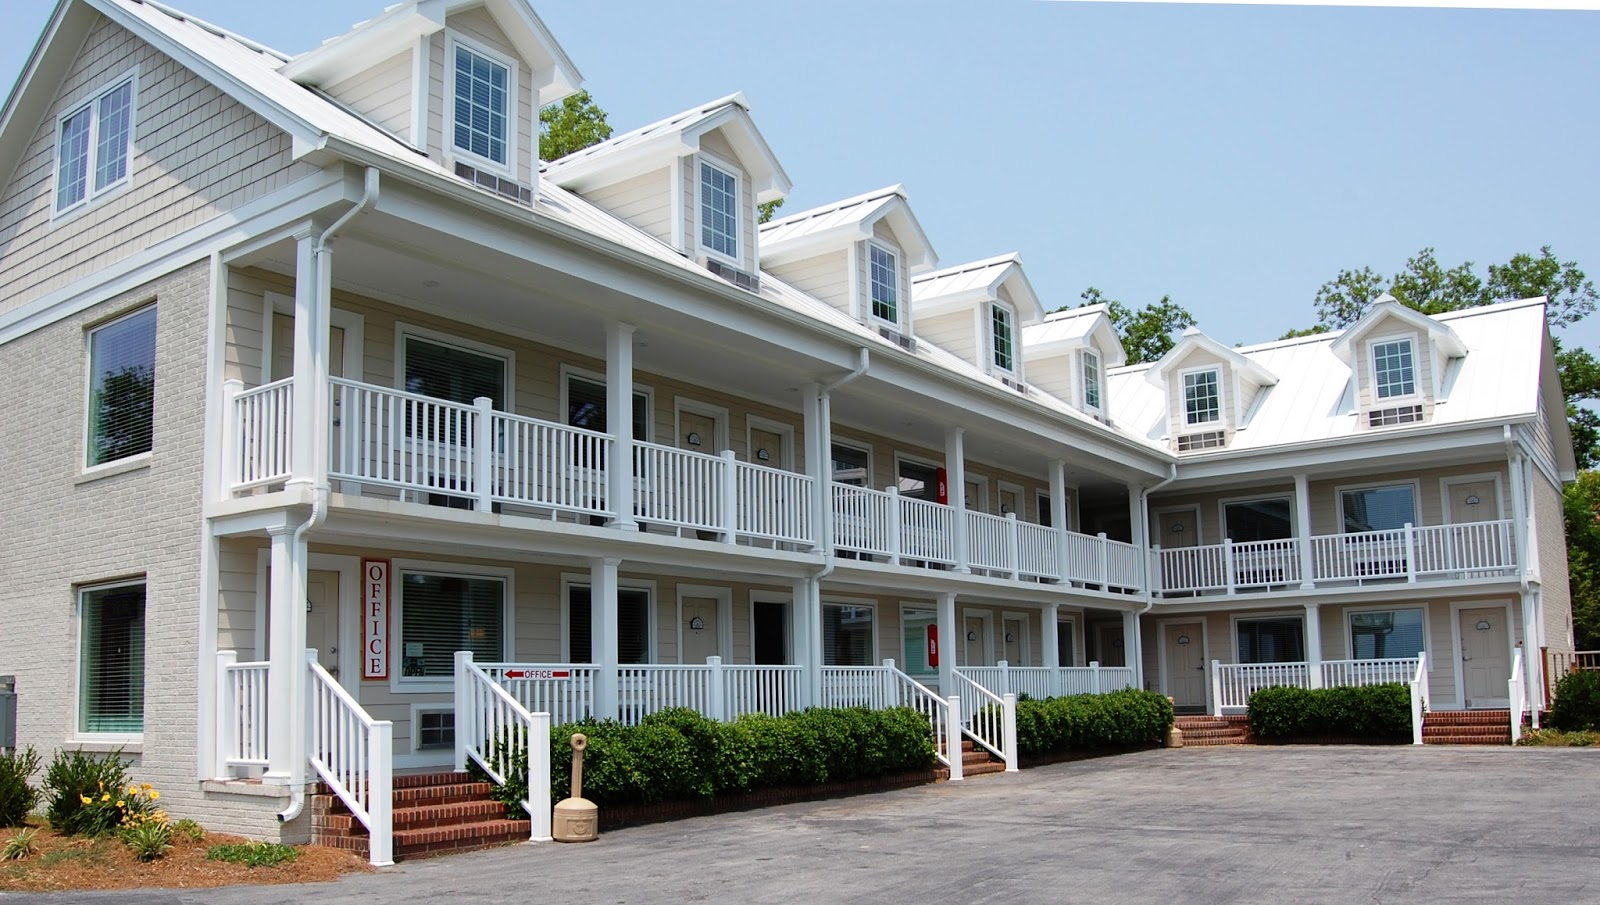 Looking For An Immaculate Quiet Hotel In Oriental Nc With A Four Mile Wide Water View River Neuse Suites Has Great Rooms Views